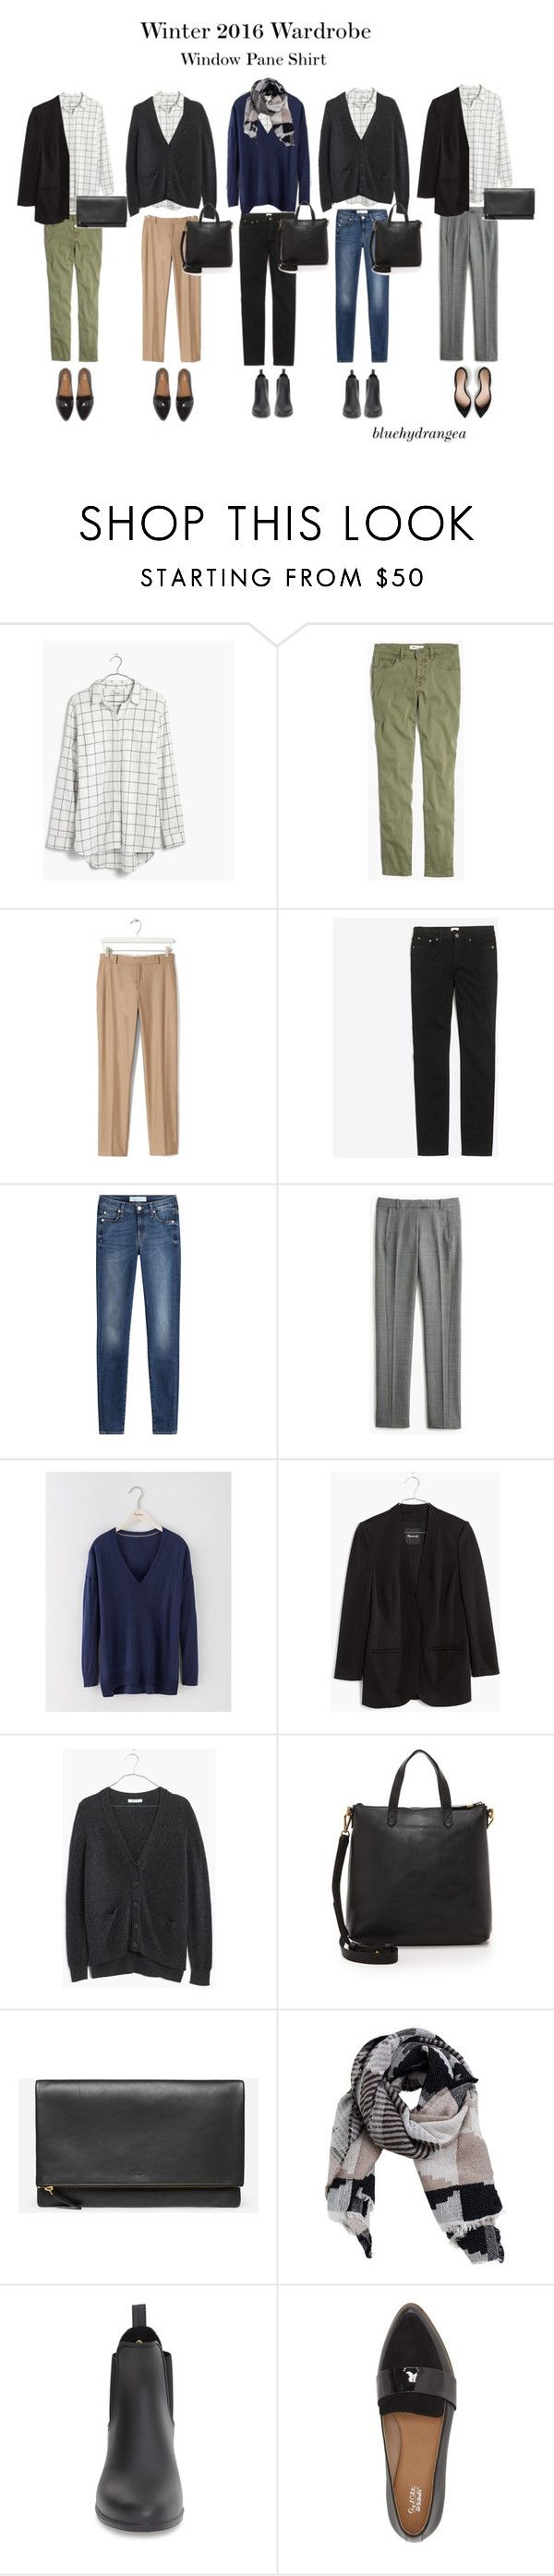 """""""Winter 2016 Wardrobe - Window Pane Shirt"""" by bluehydrangea ❤ liked on Polyvore featuring Madewell, Banana Republic, J.Crew, 7 For All Mankind, Boden, MANGO, Sam Edelman and Dr. Scholl's"""